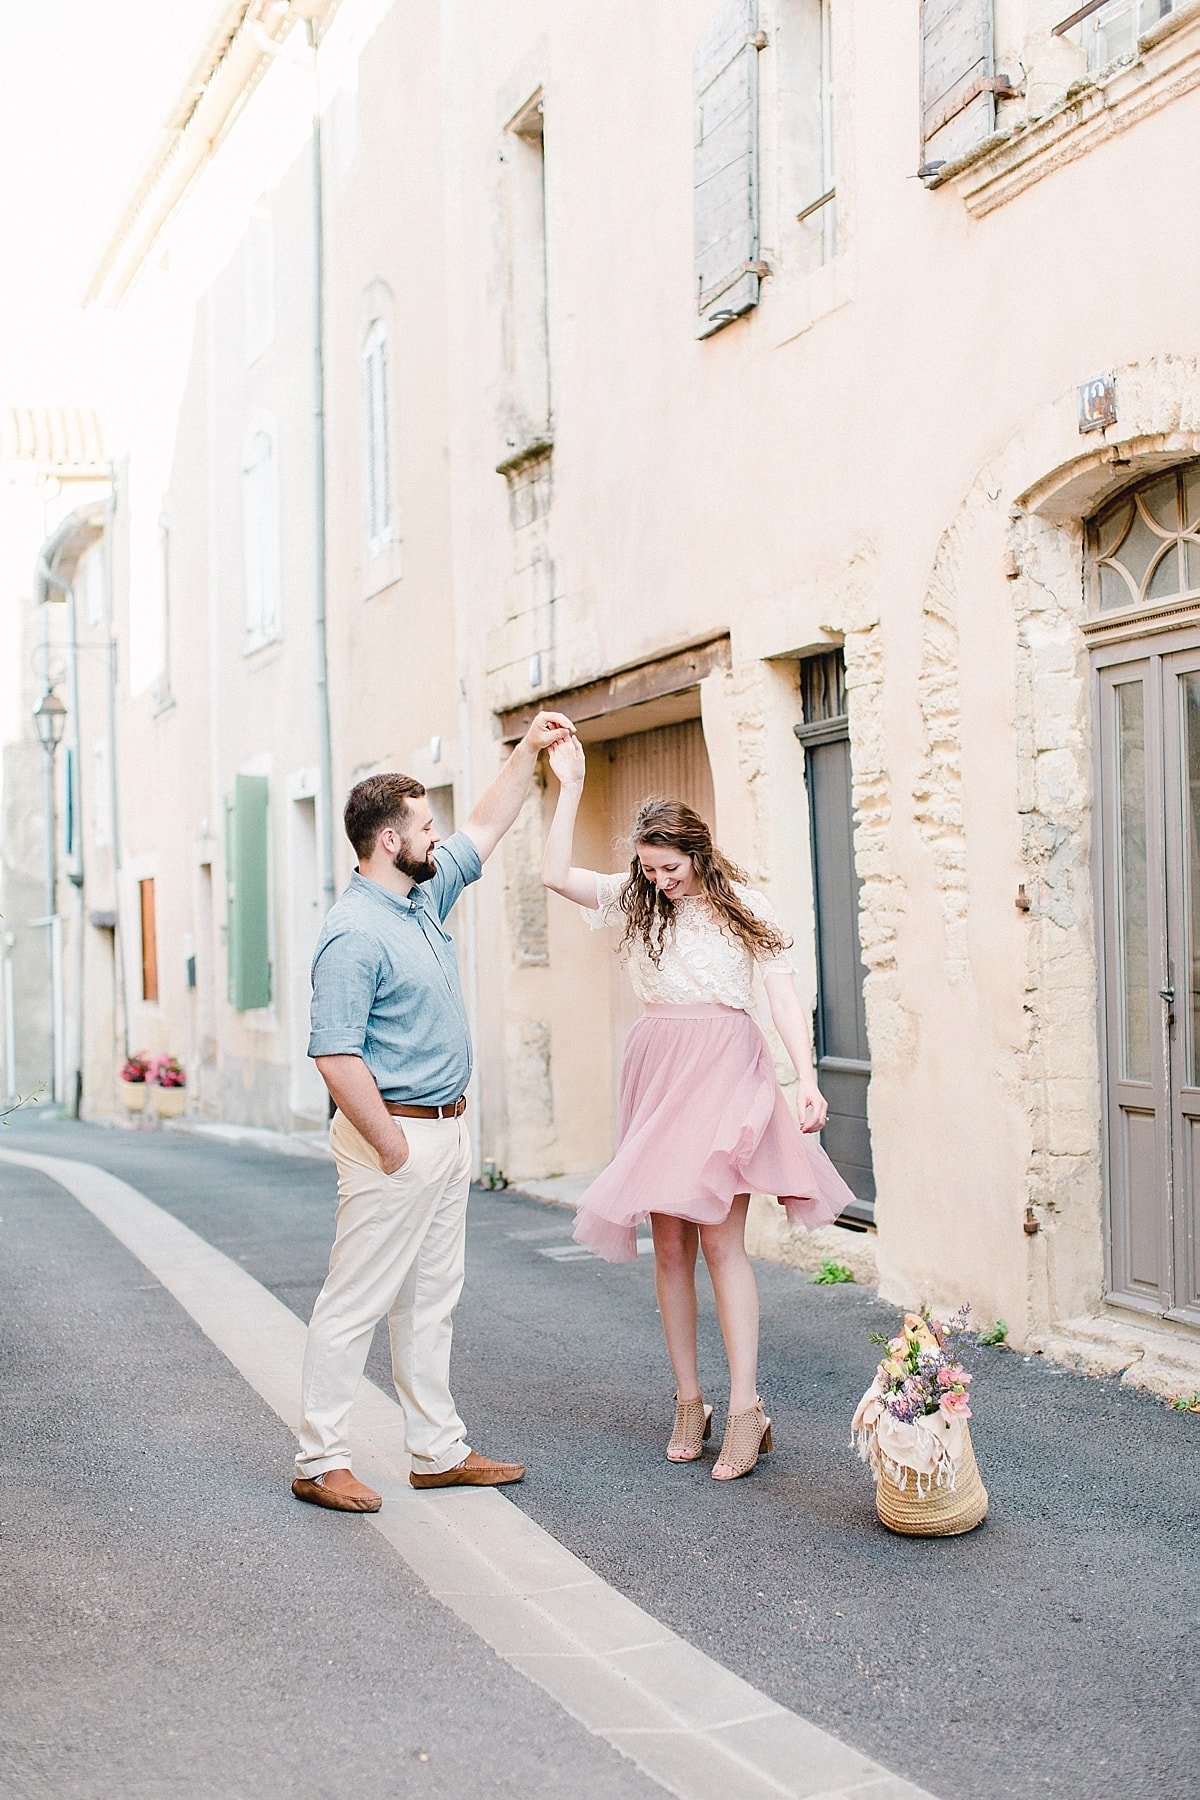 provence-france-lavender-anniversary-session-alicia-yarrish-photography-8-min